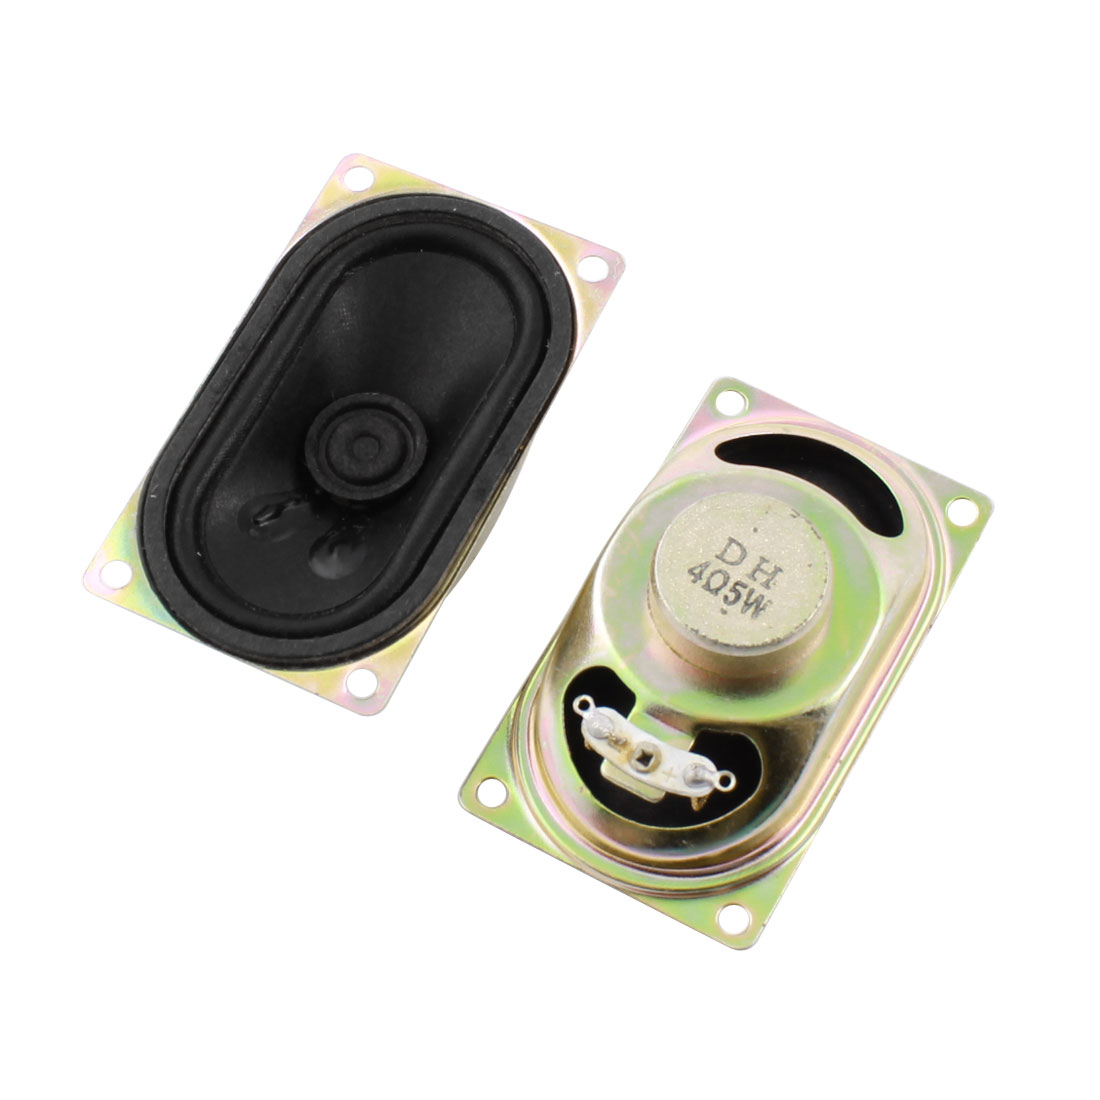 2 Pcs Rectangle Metal Case Magnetic Type Television TV Player Audio Speaker Amplifier Loudspeaker 5W 4 Ohm 71mm x 41mm